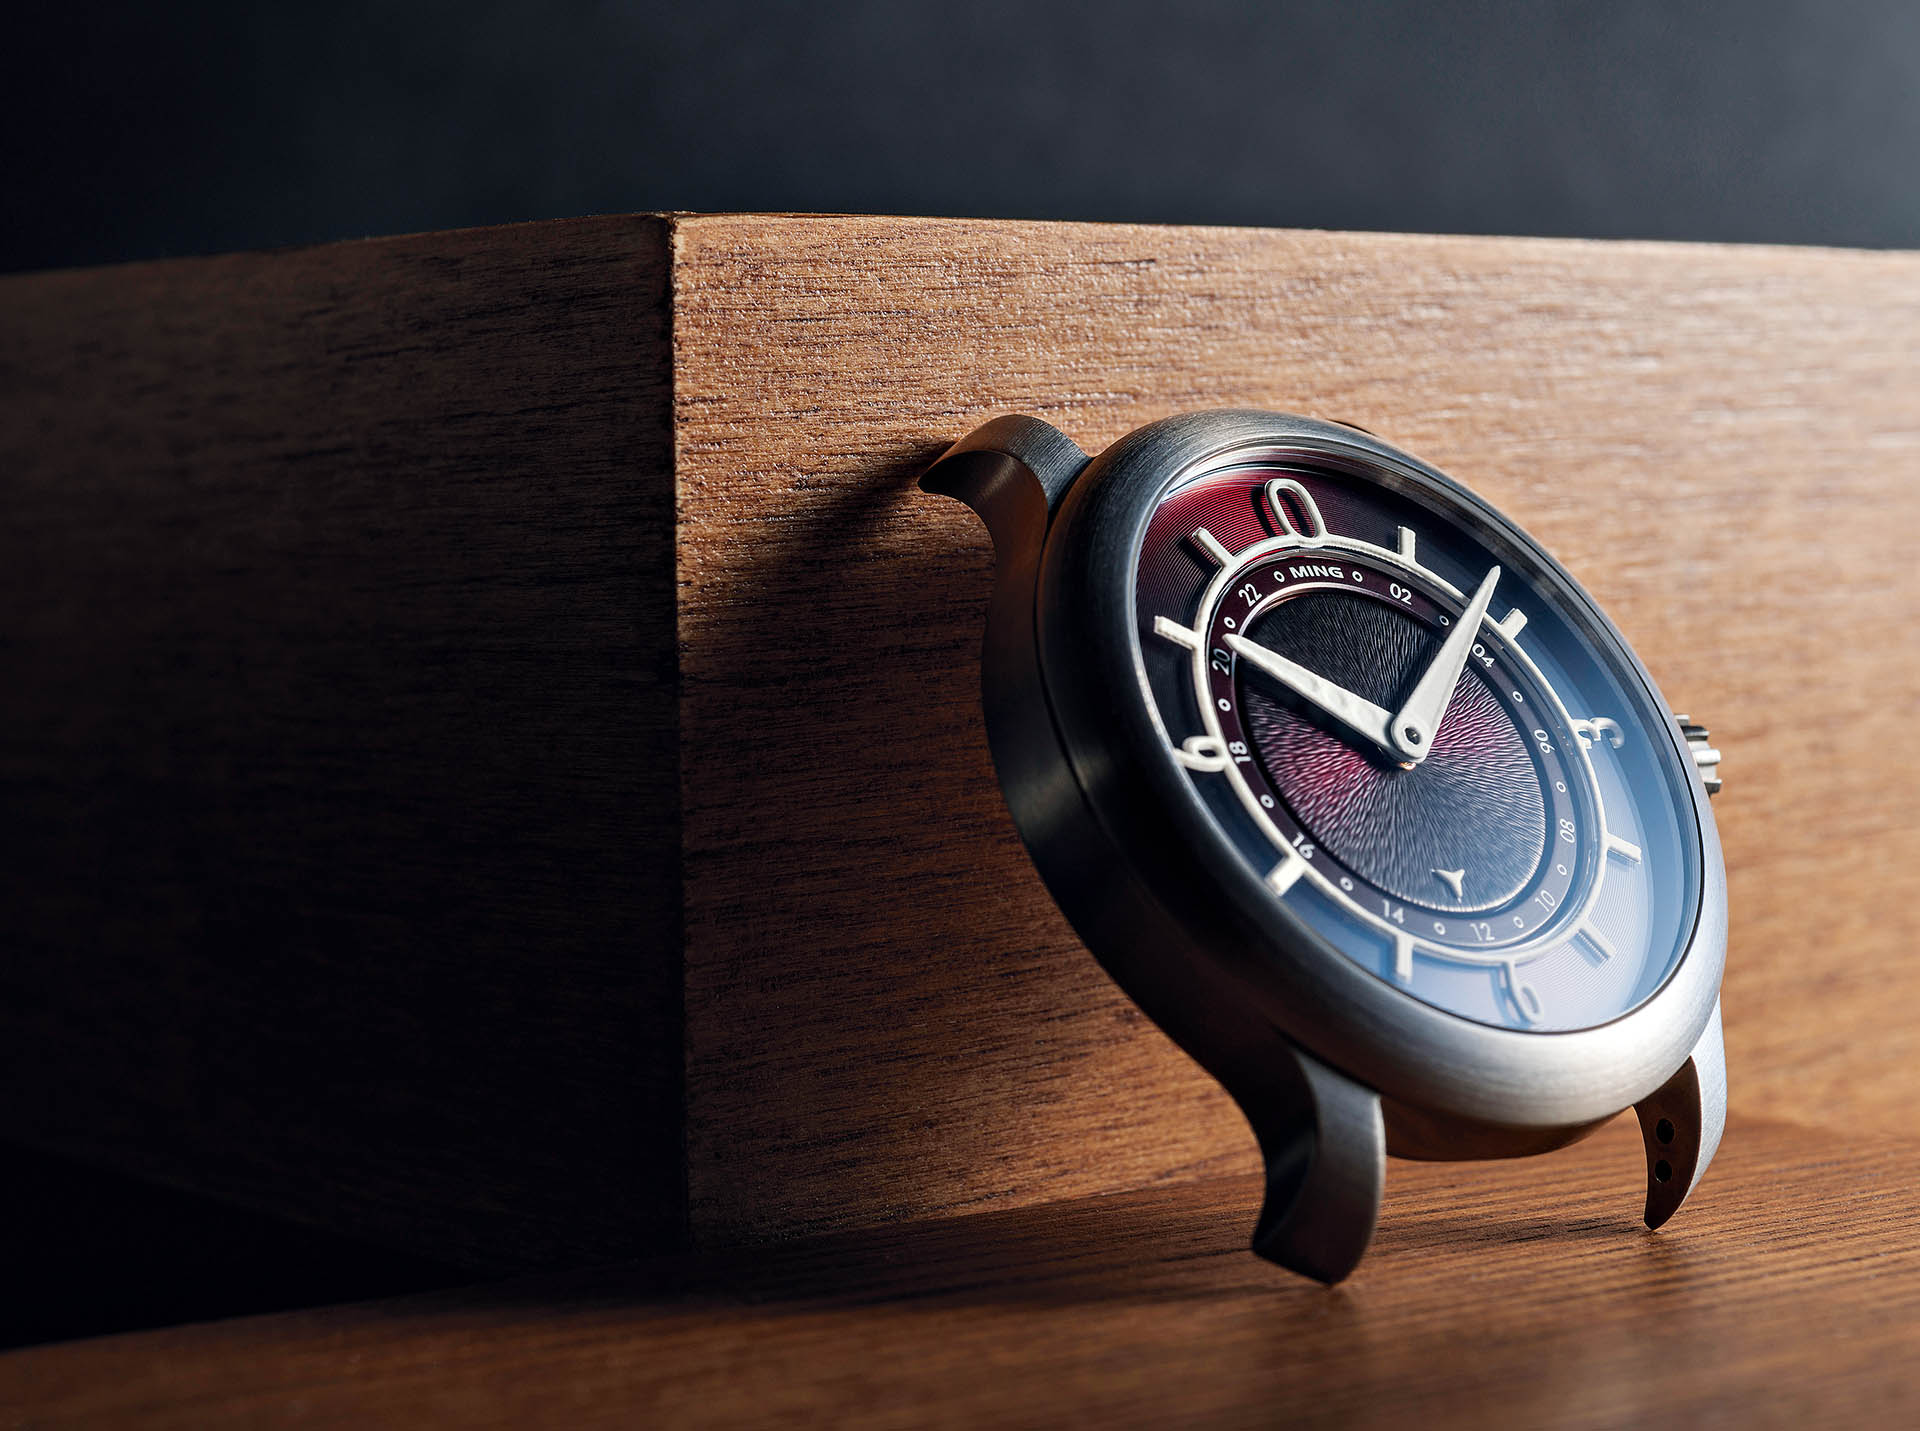 Ming Watches